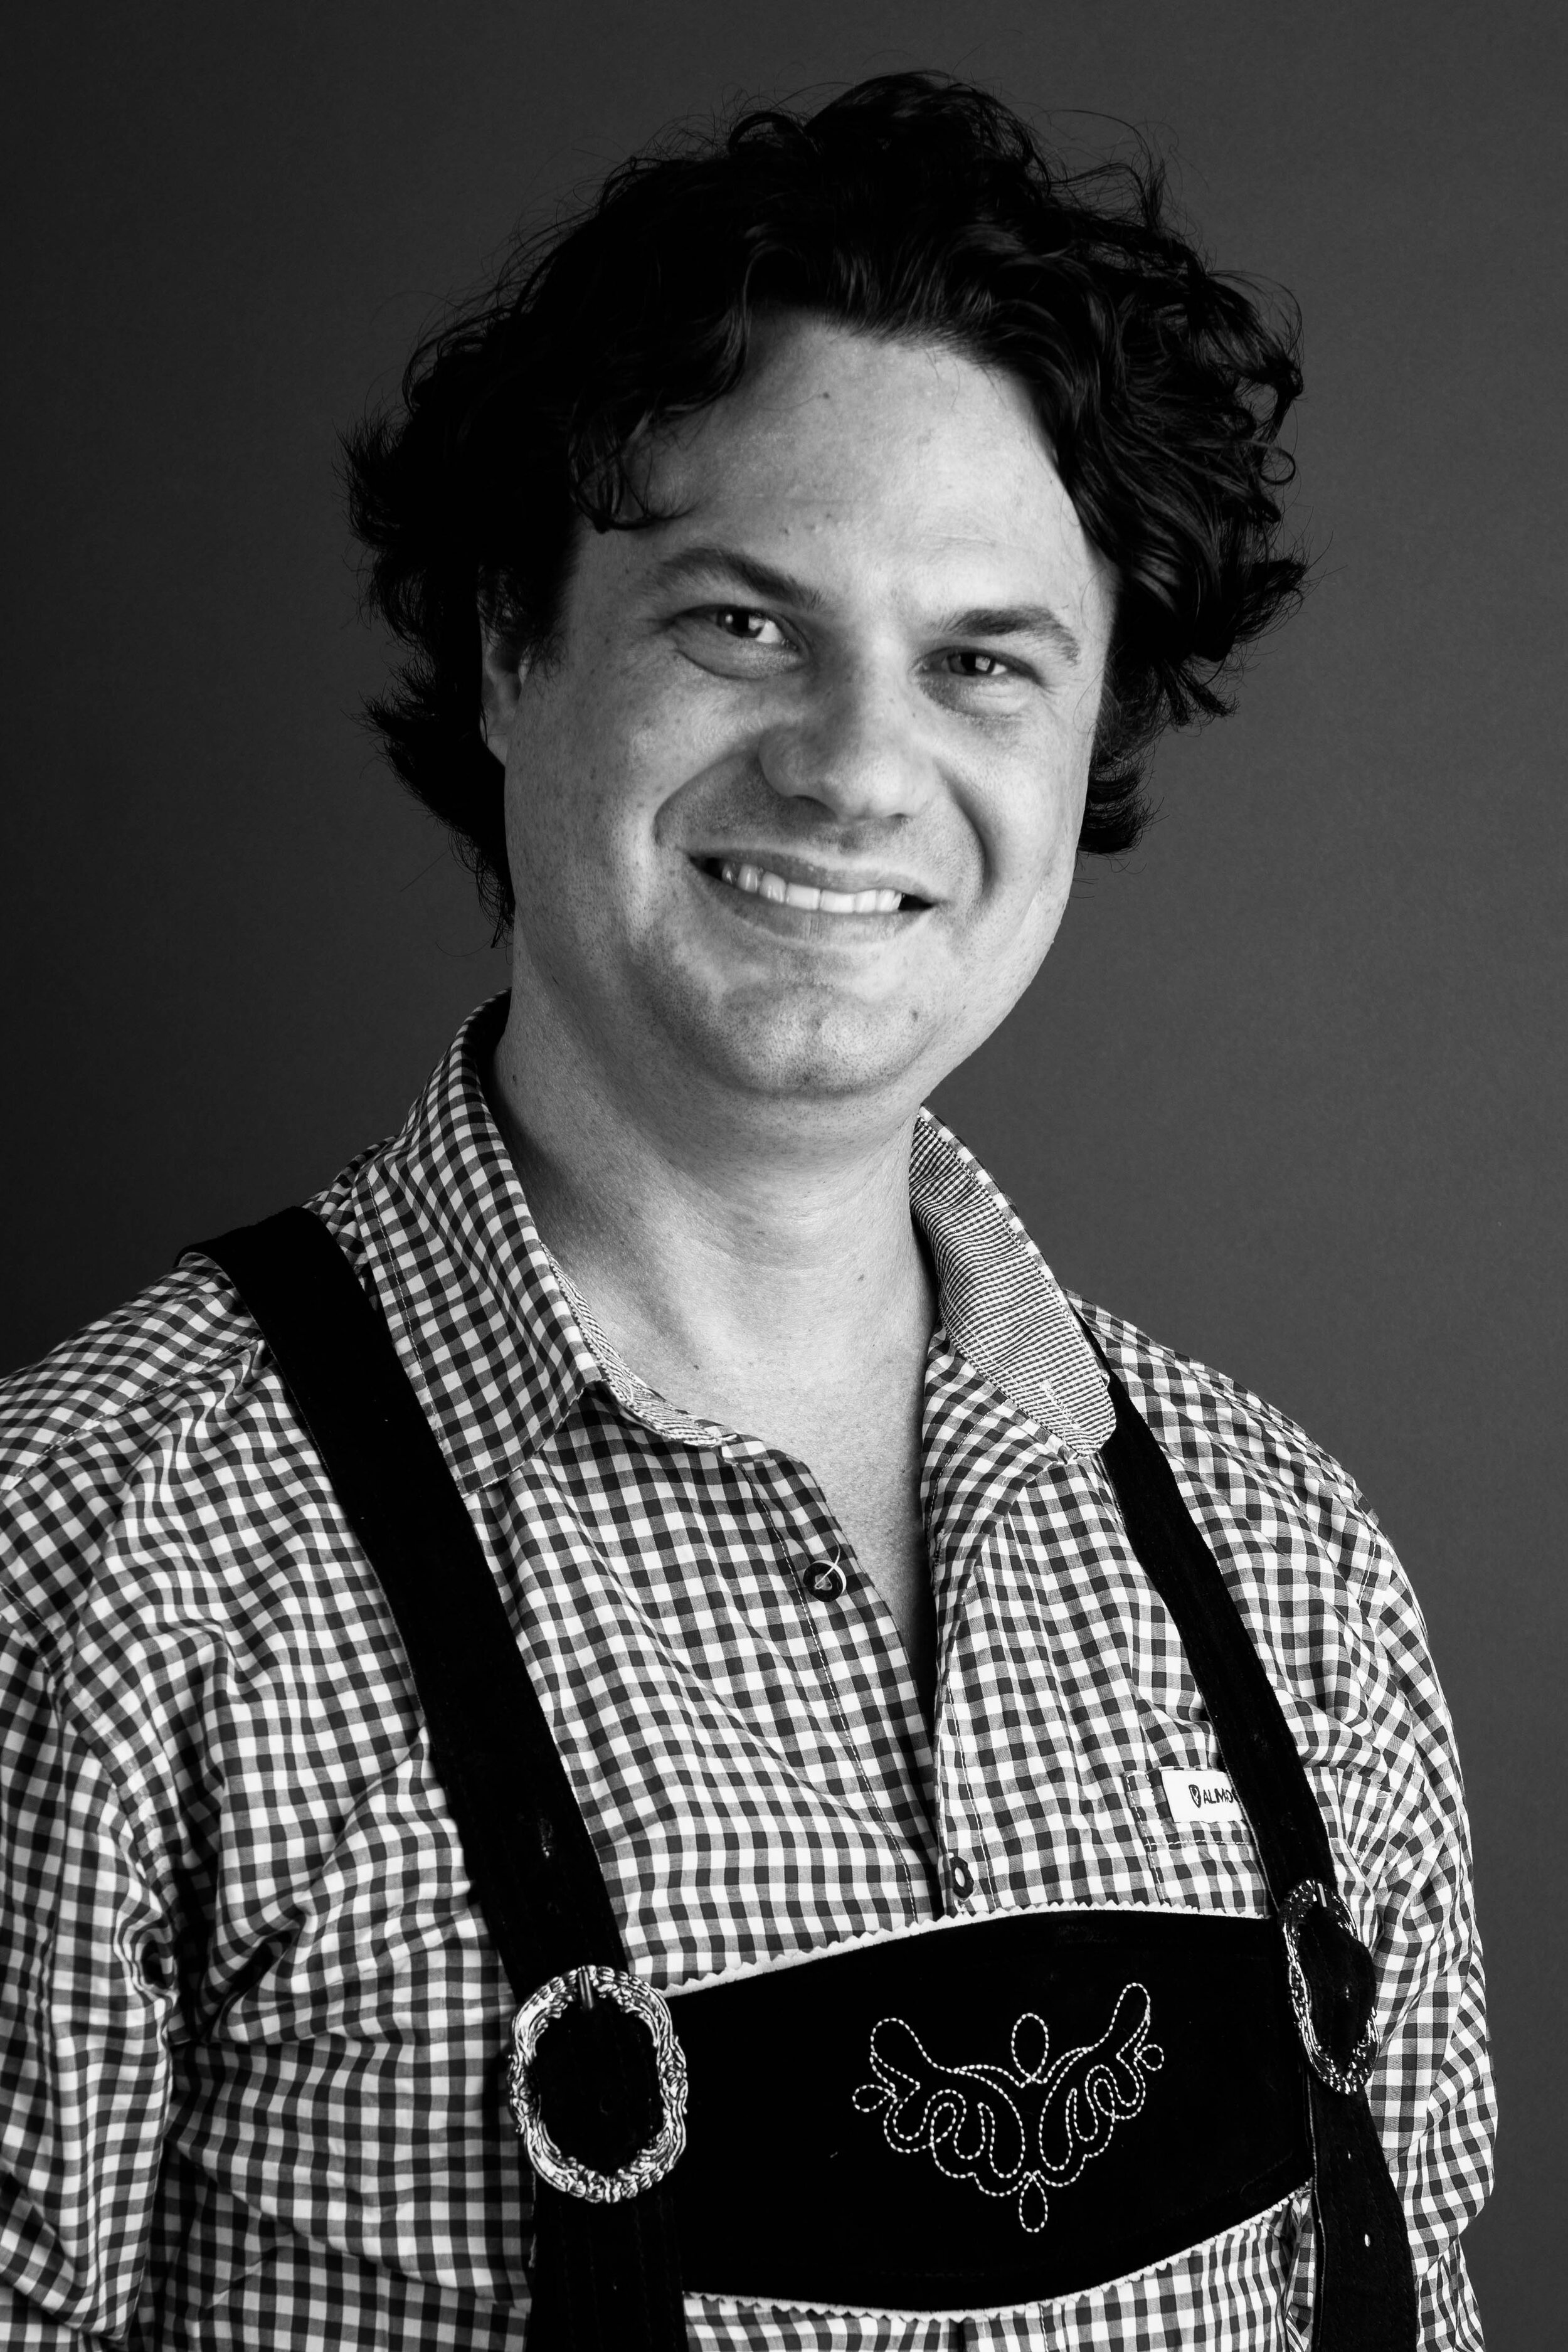 Simon Hilberding   With his signature untamed hair and love of BBQ's, Simon hails from Australia, because every band needs their token Aussie!